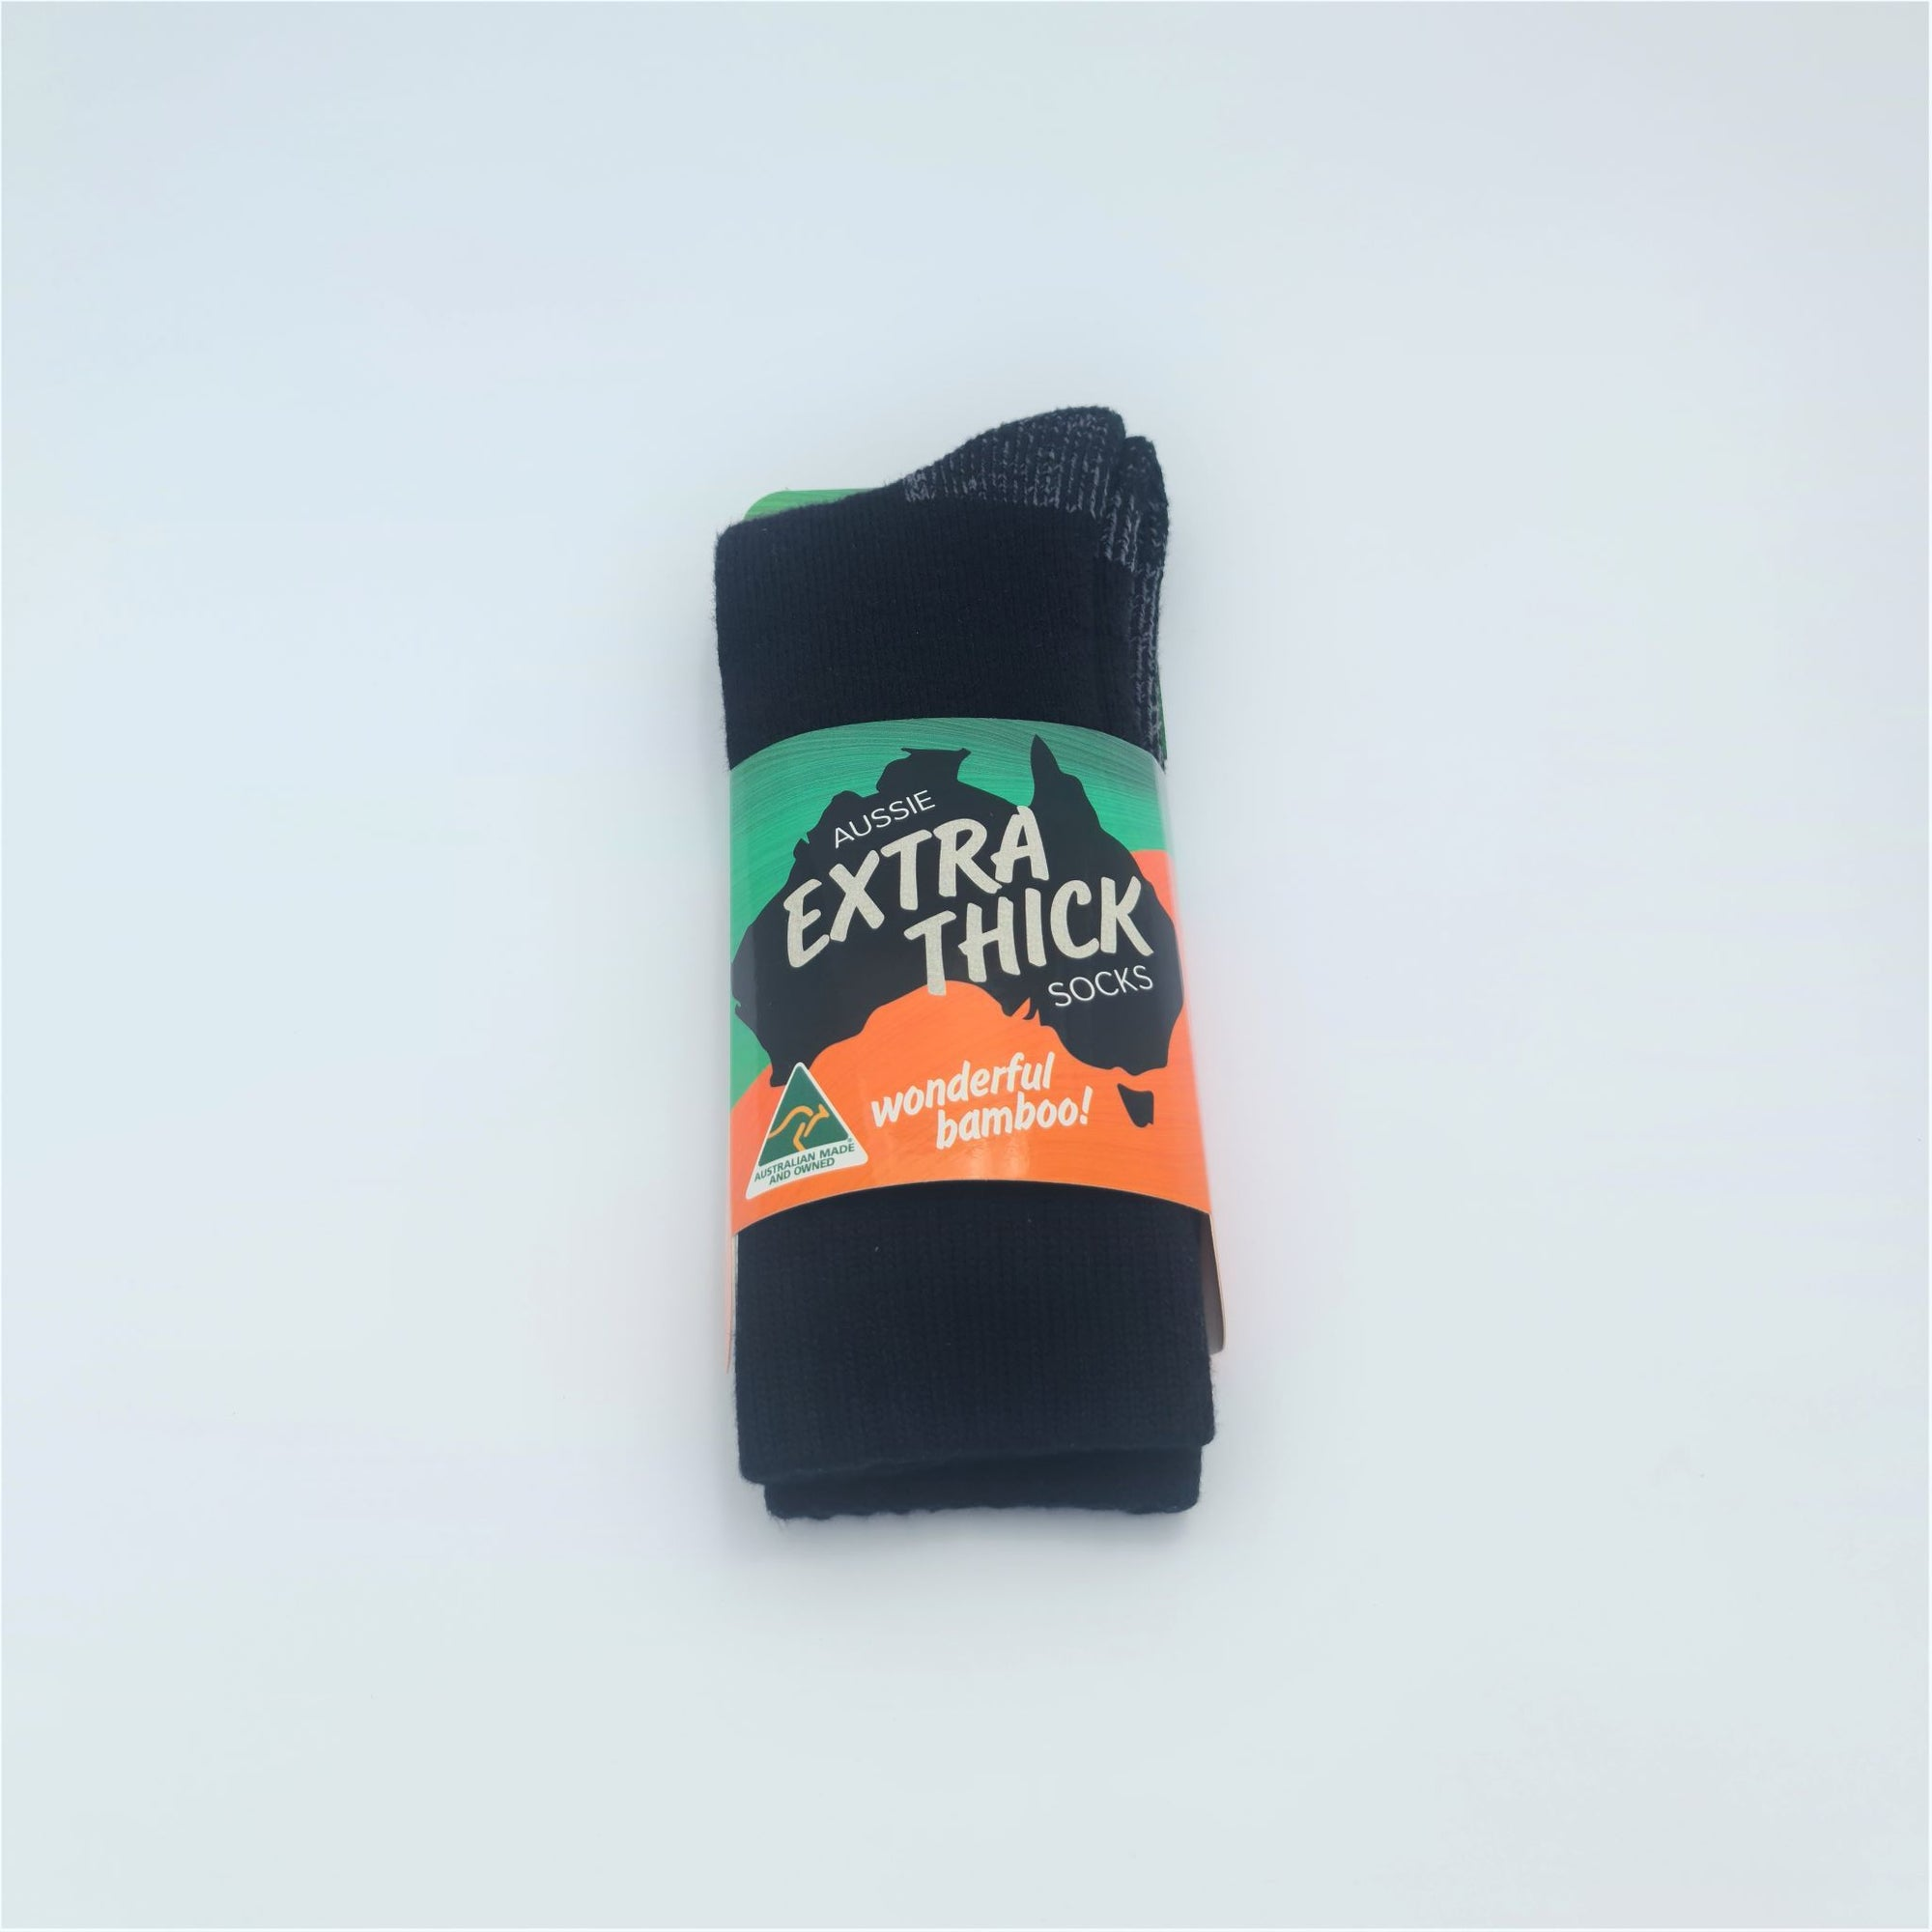 Bamboo Extra Thick Socks | Made in Australia